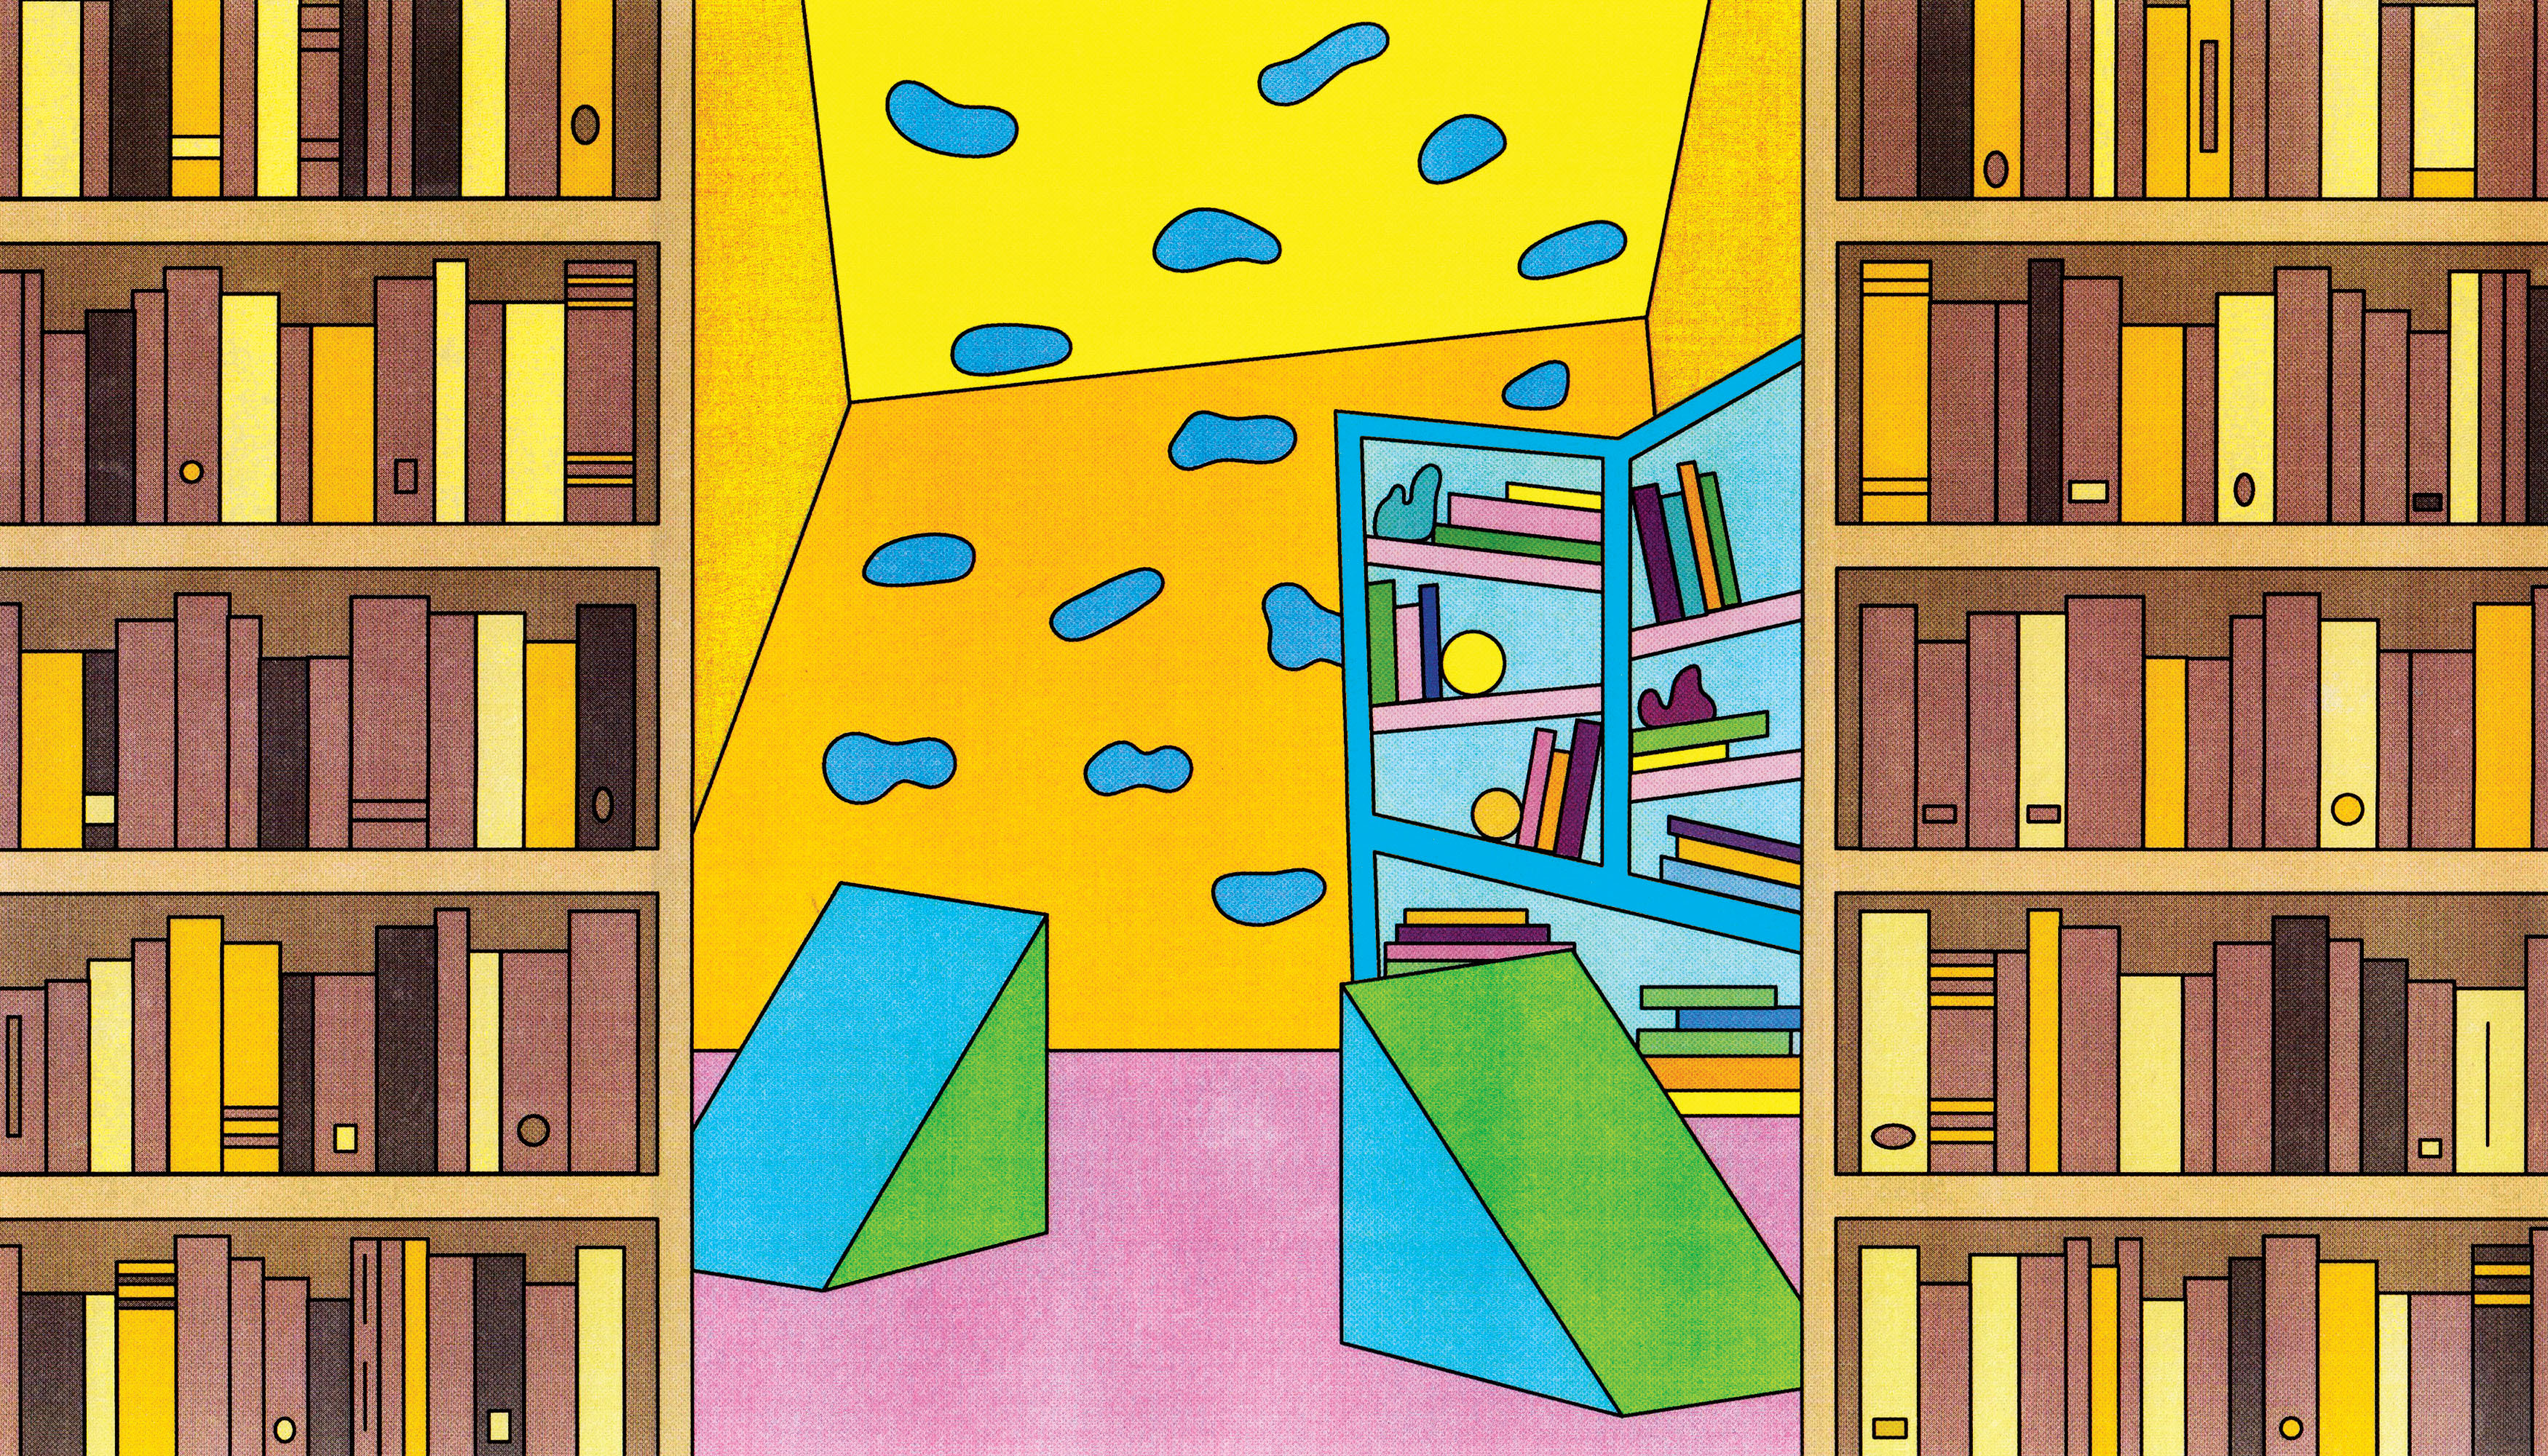 Two brown library bookcases frame a colorful scene of funky geometric kid's shelves and climbing structures. Illustration.